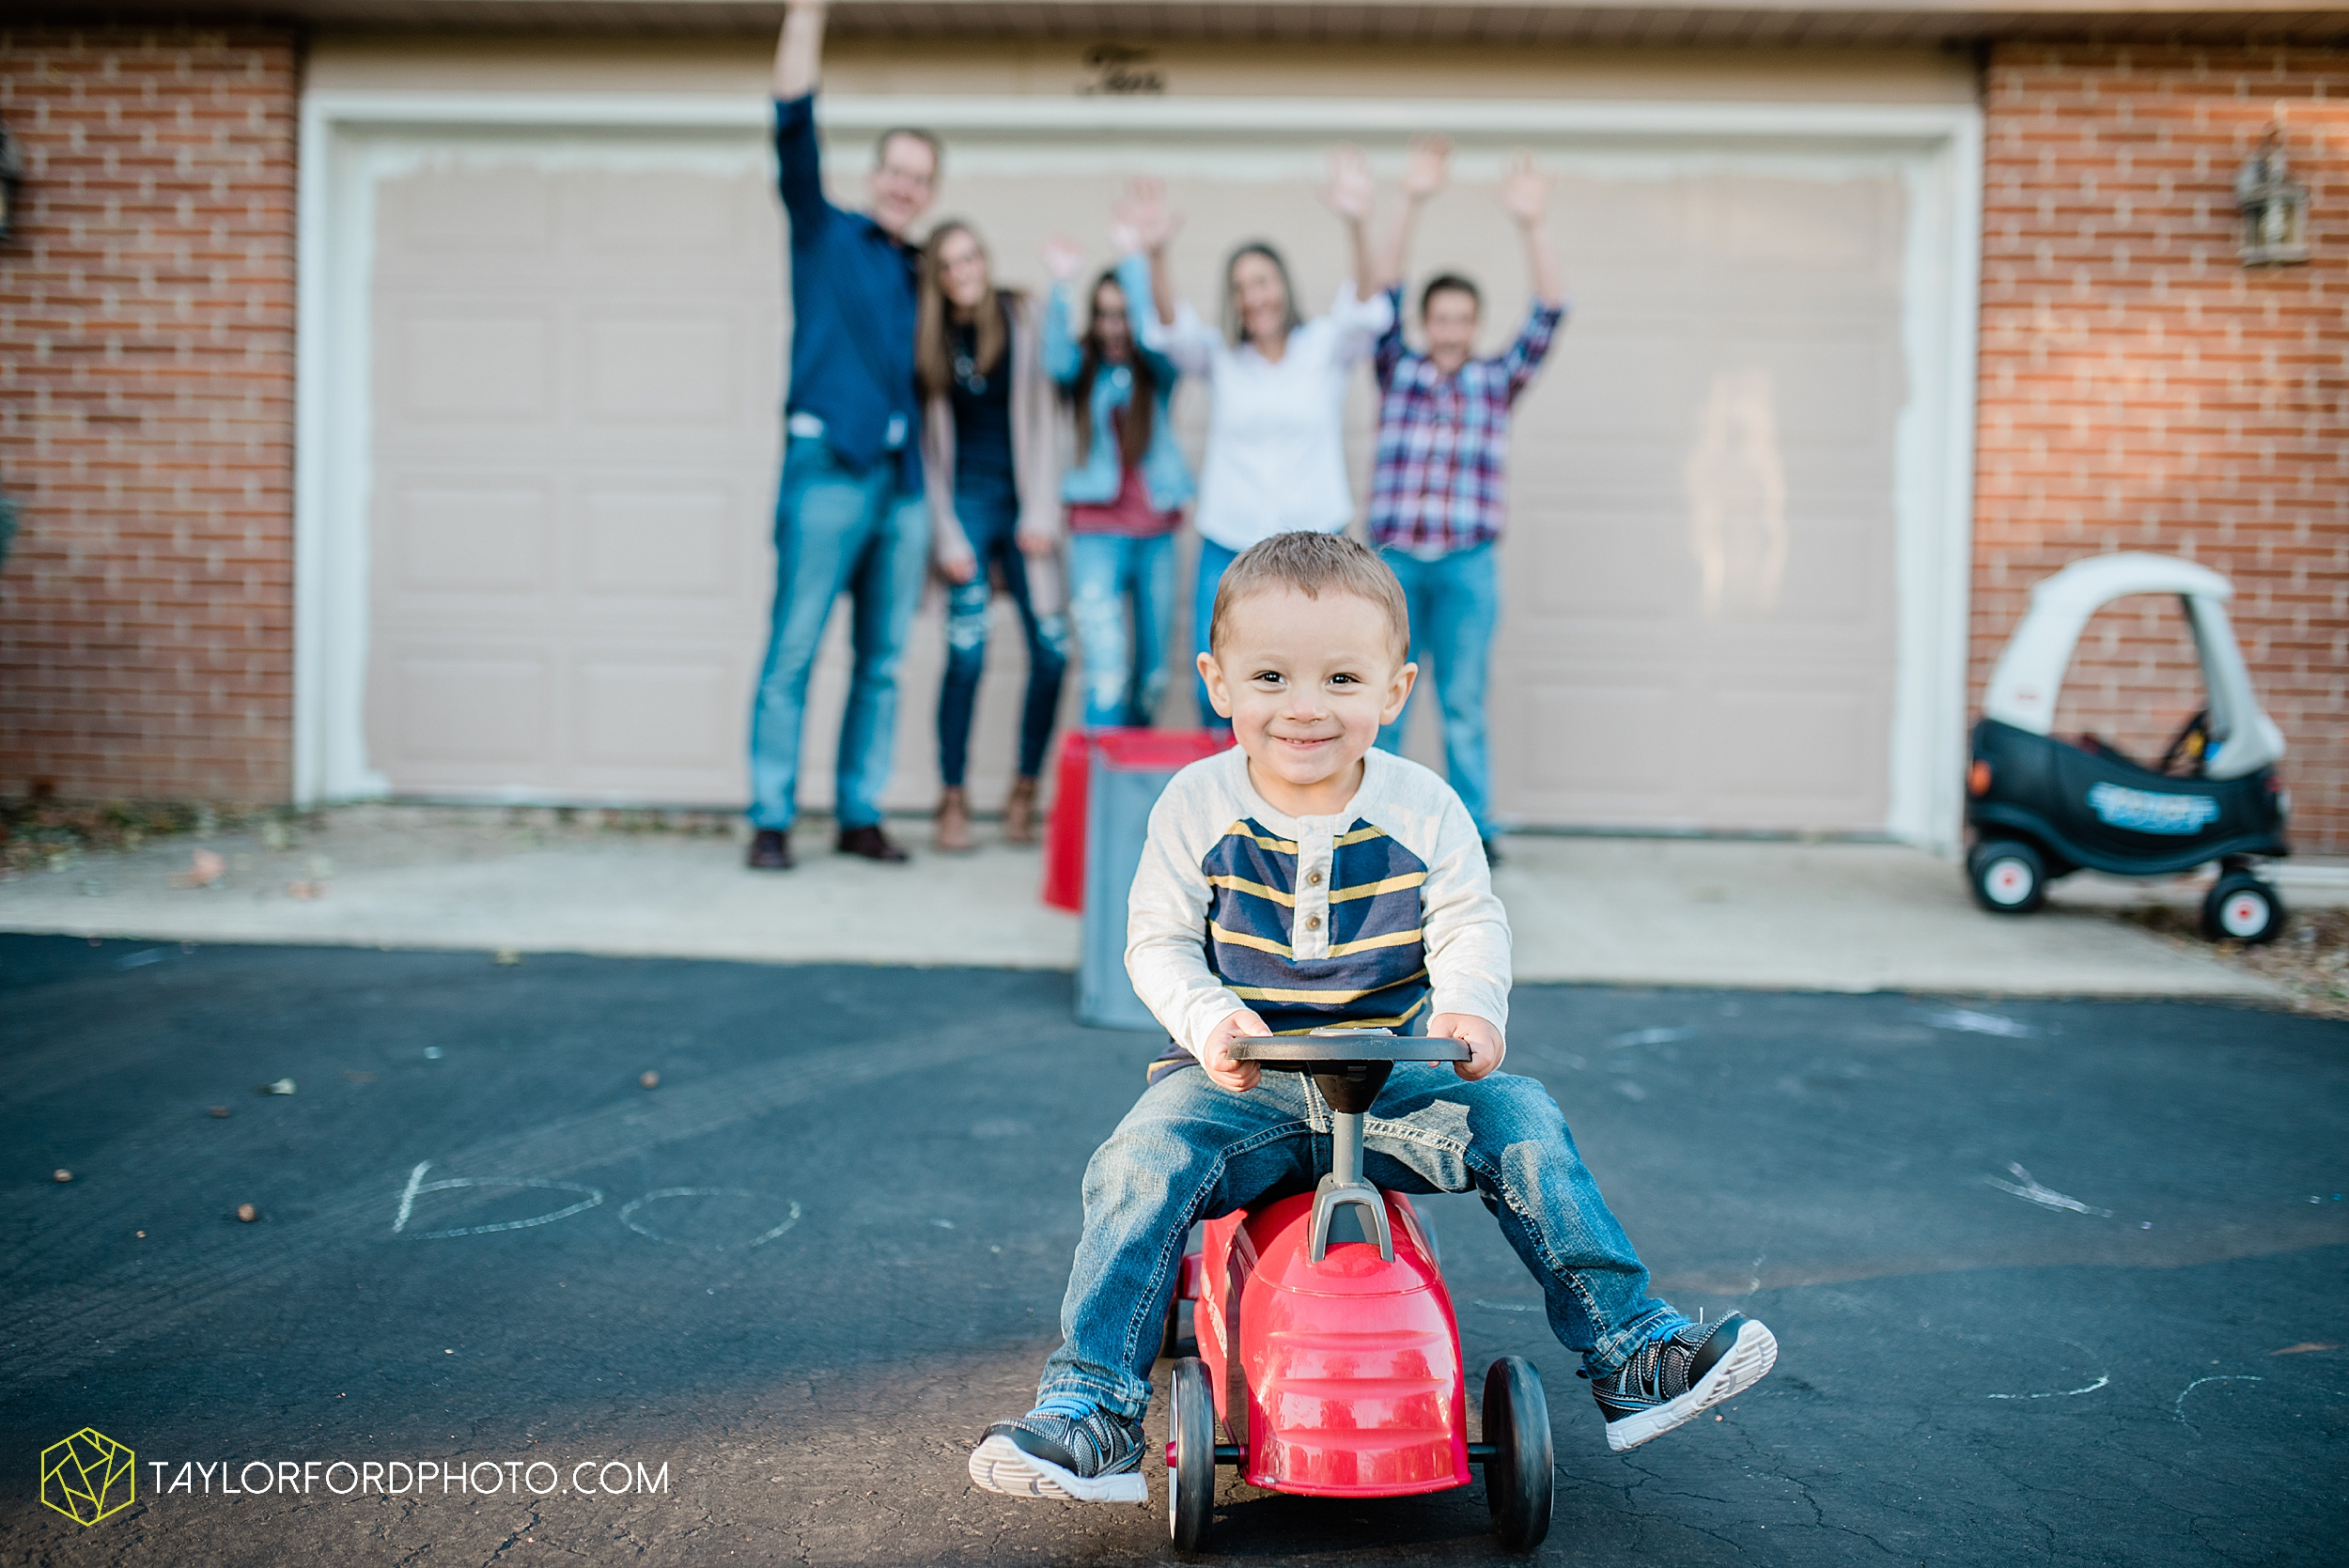 northwest-van-wert-ohio-backyard-at-home-outdoor-natural-light-stollerfamily-photographer-taylor-ford-photography_1249.jpg